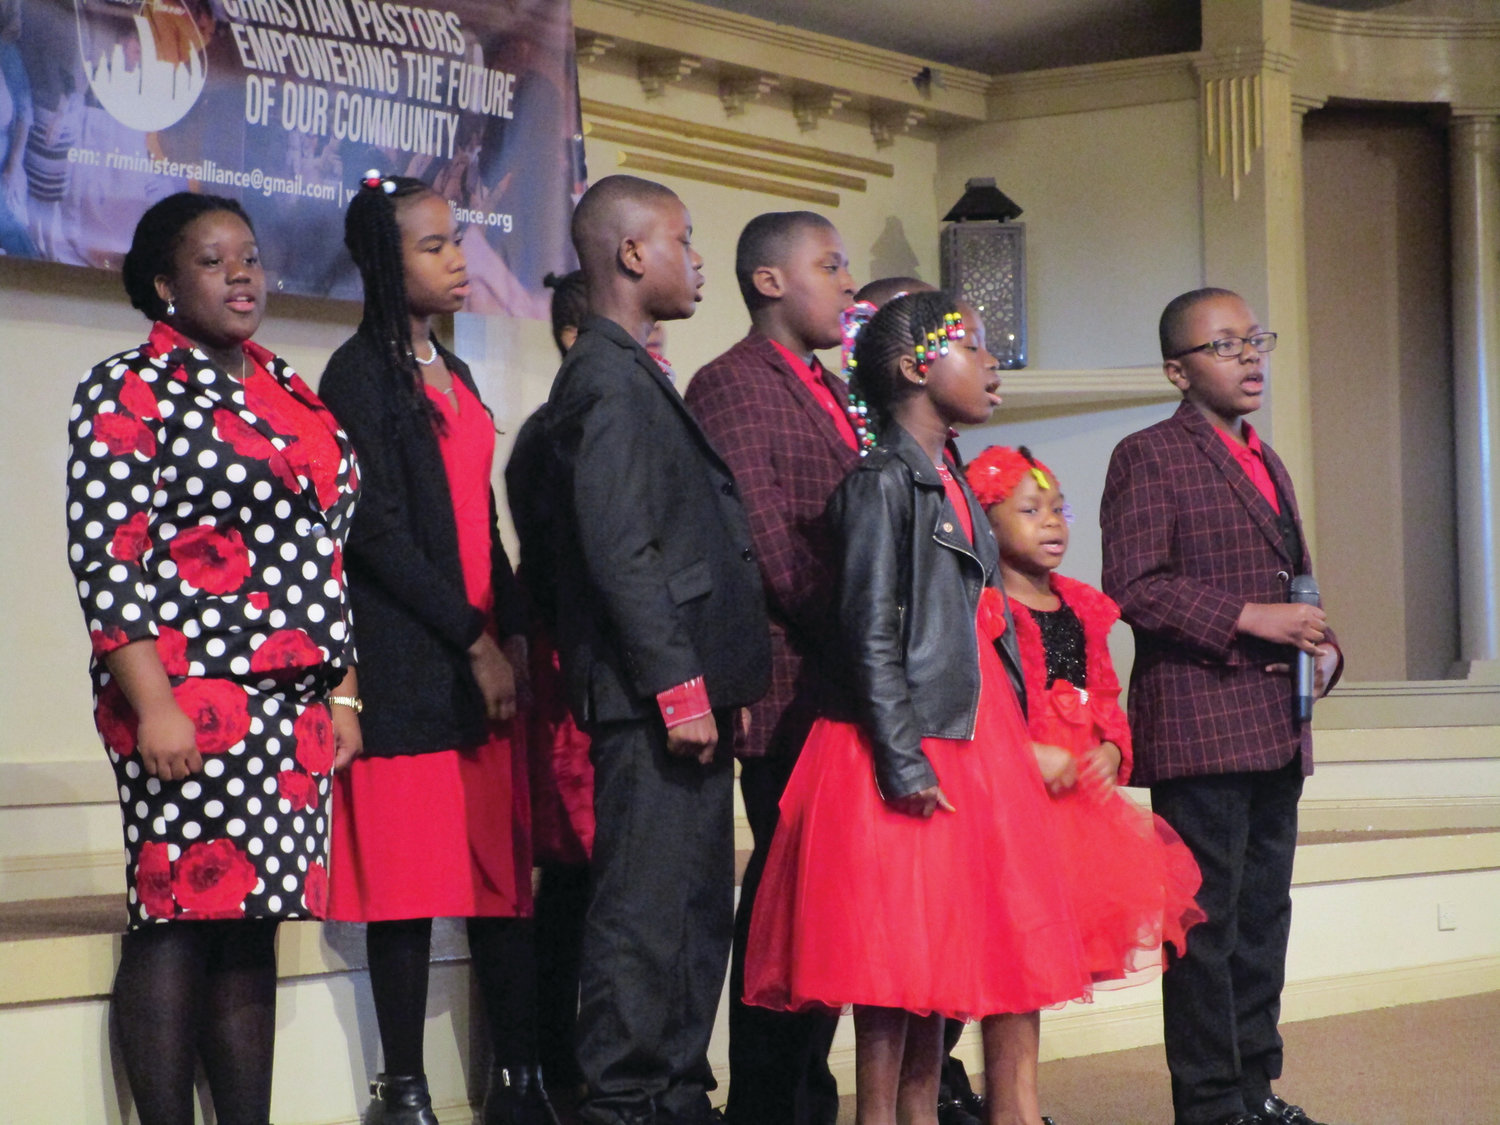 CELEBRATING WITH SONG: Members of Unity Chapel Children's Ministry provided musical entertainment before Carlon Howard's keynote address during Monday's MLK Day Scholarship Breakfast.